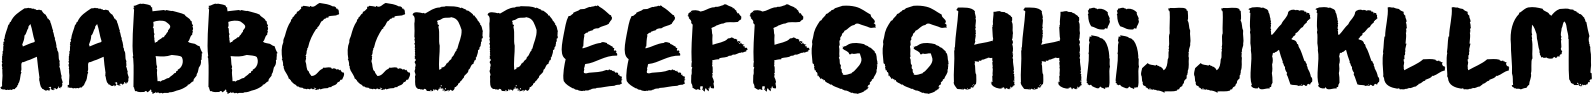 Meltow Marker Font